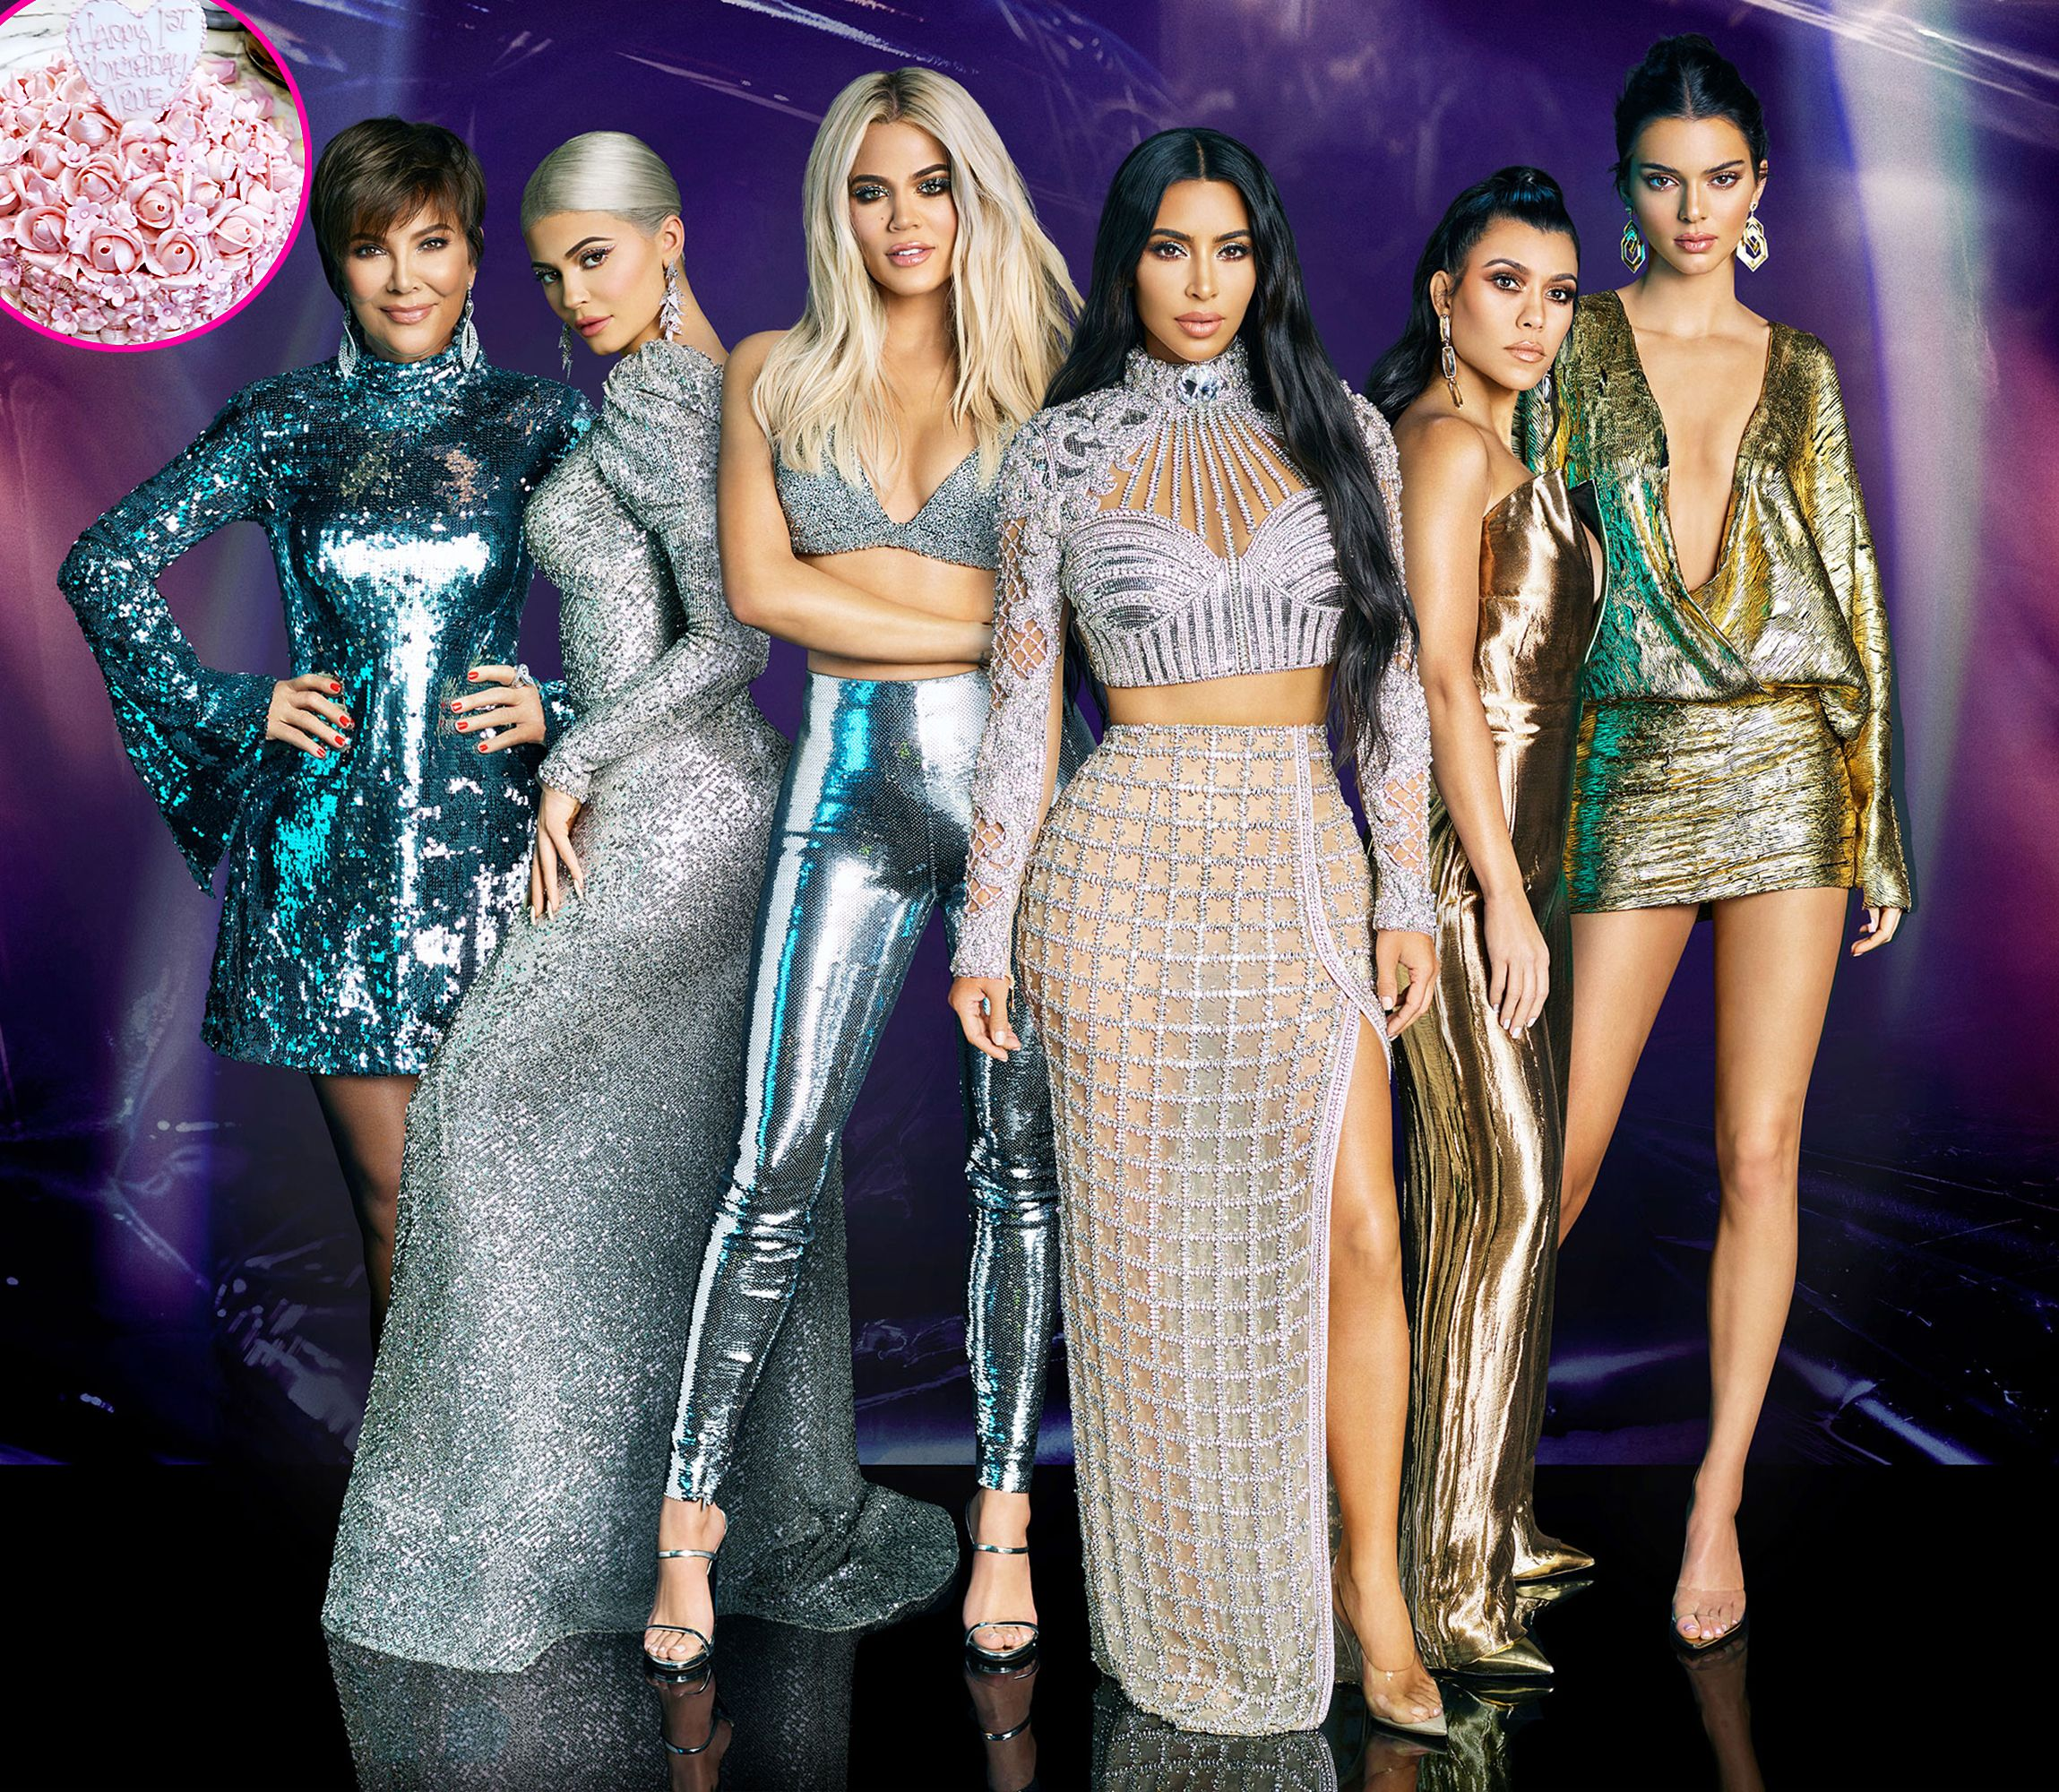 keeping-up-with-the-kardashians-ending-in-2021-read-the-full-statement